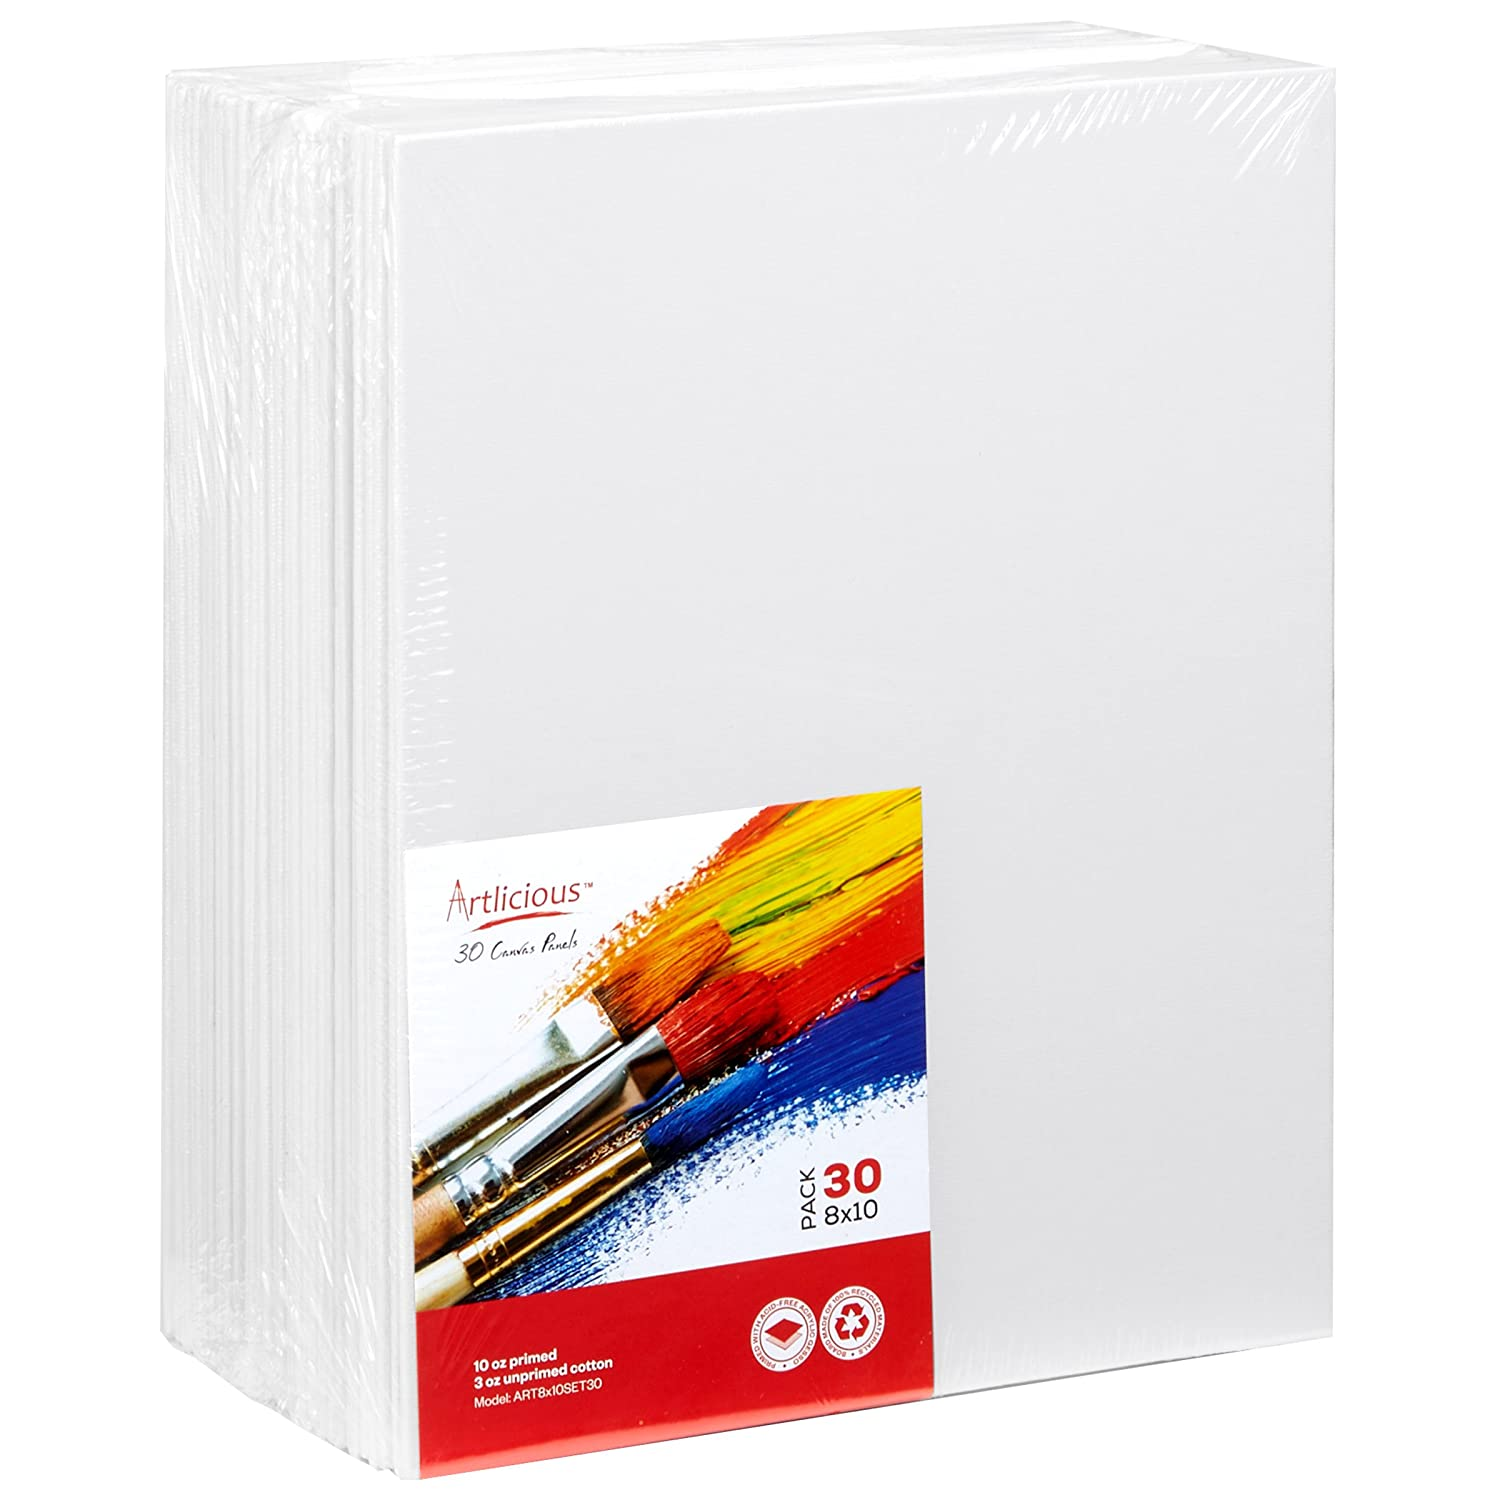 Artlicious - 30 Classroom Value Pack - 8x10 Primed Canvas Panel Boards